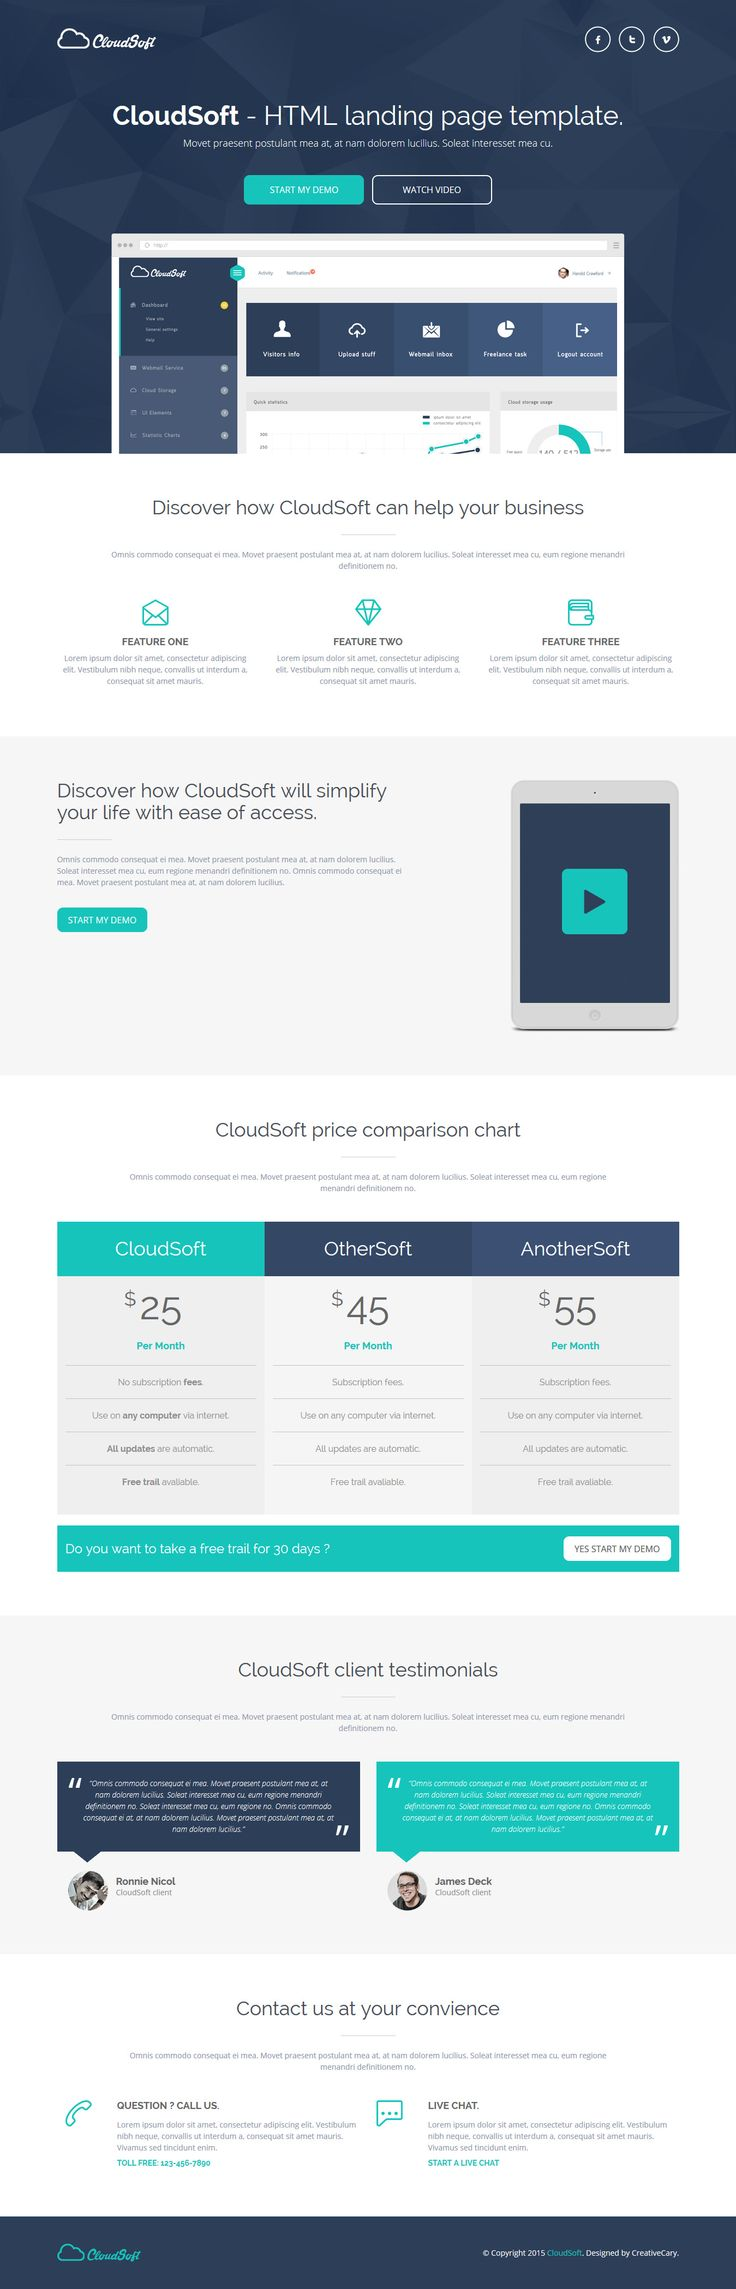 Cloud Soft - HTML Landing Page Template #website #webdesign Live Preview & Download: http://themeforest.net/item/cloud-soft-html-landing-page-template/12364255?ref=ksioks